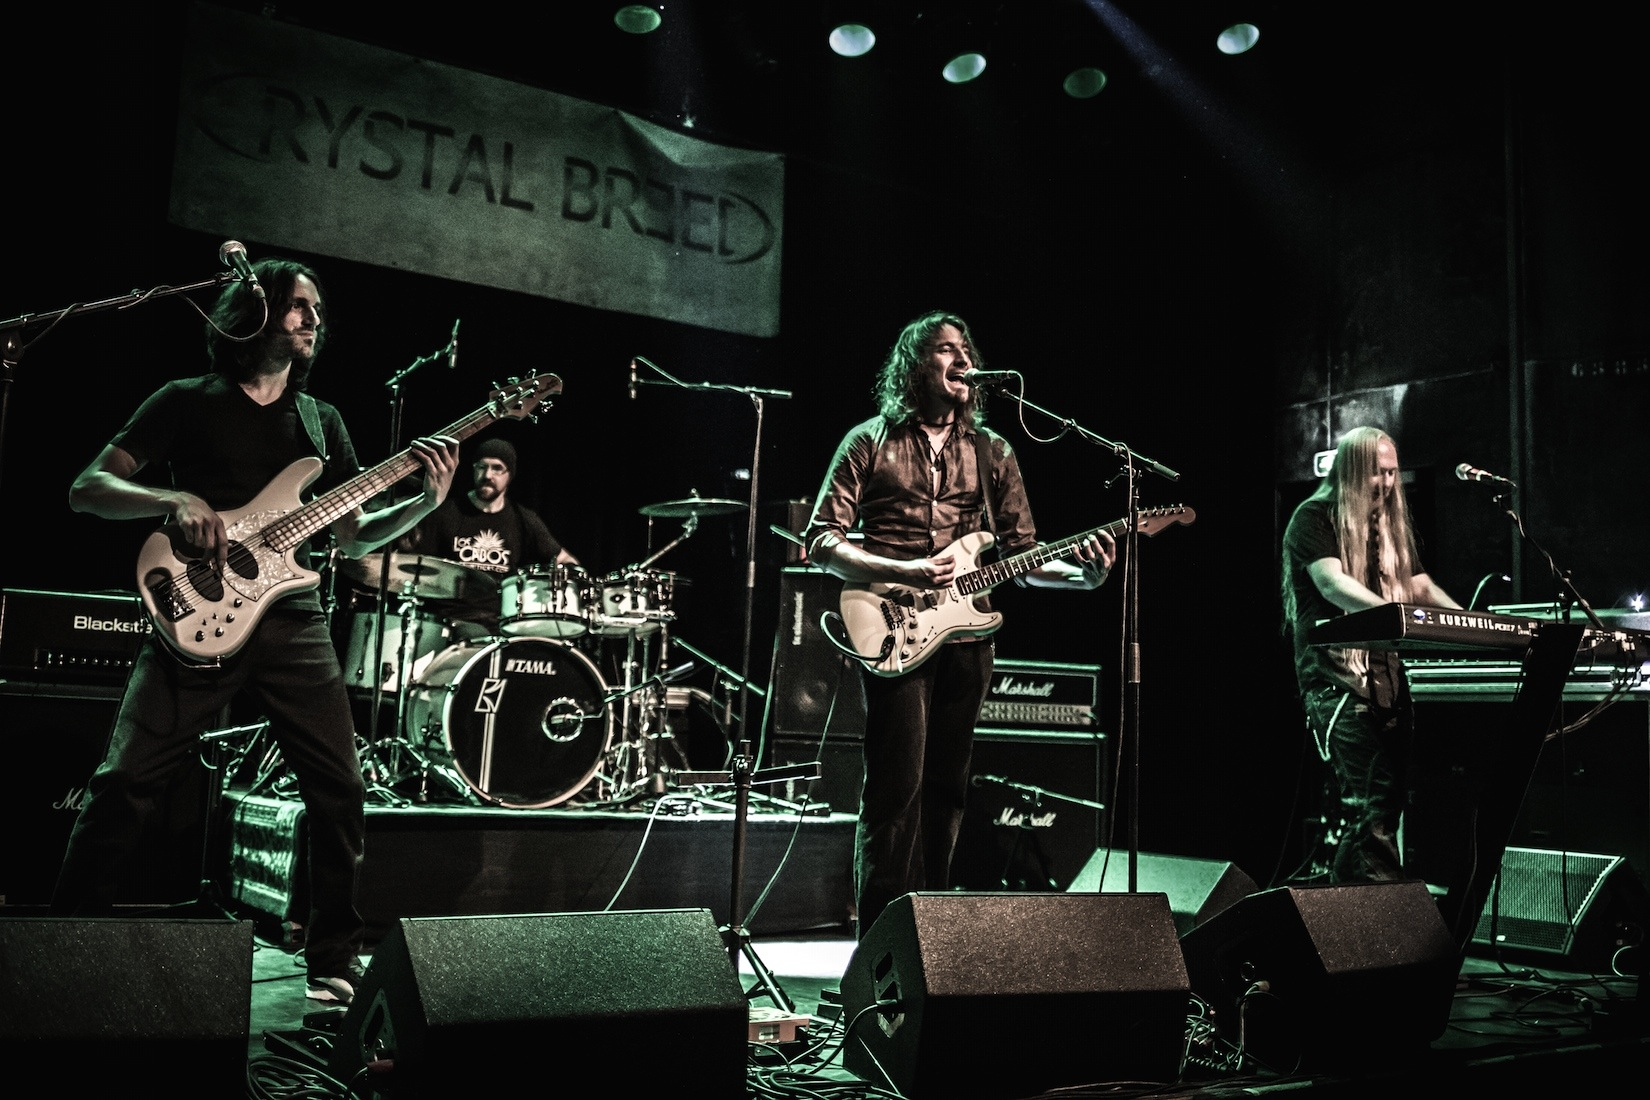 crystal-breed-weert-de-bosuil45